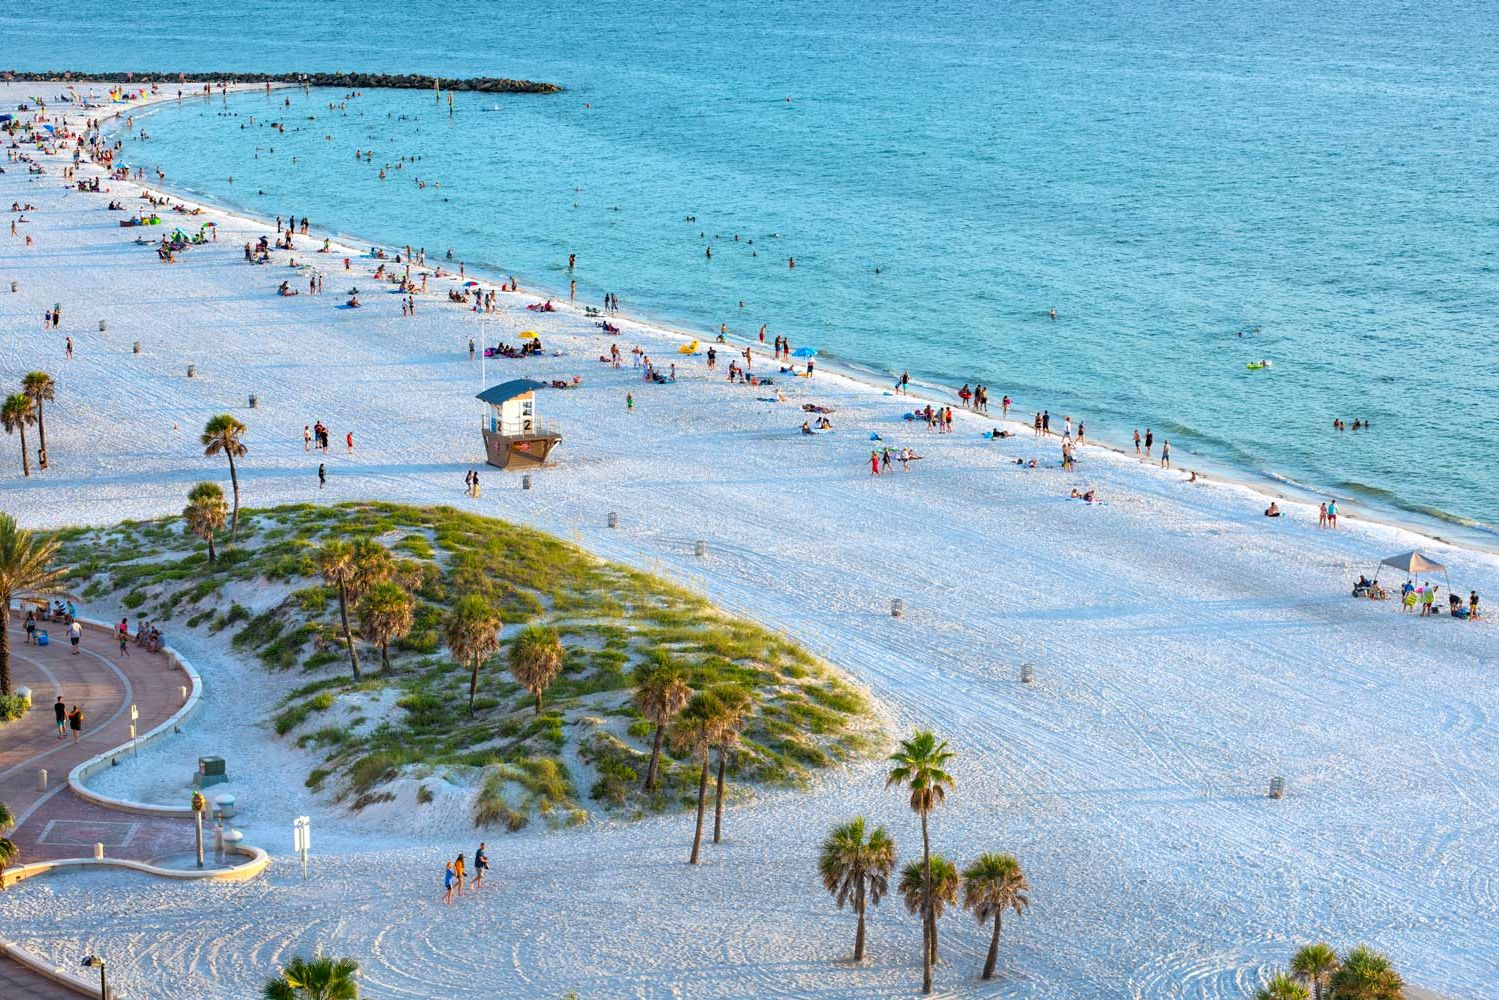 JetBlue Is Having a Florida Flash Sale With Flights As Low As $59